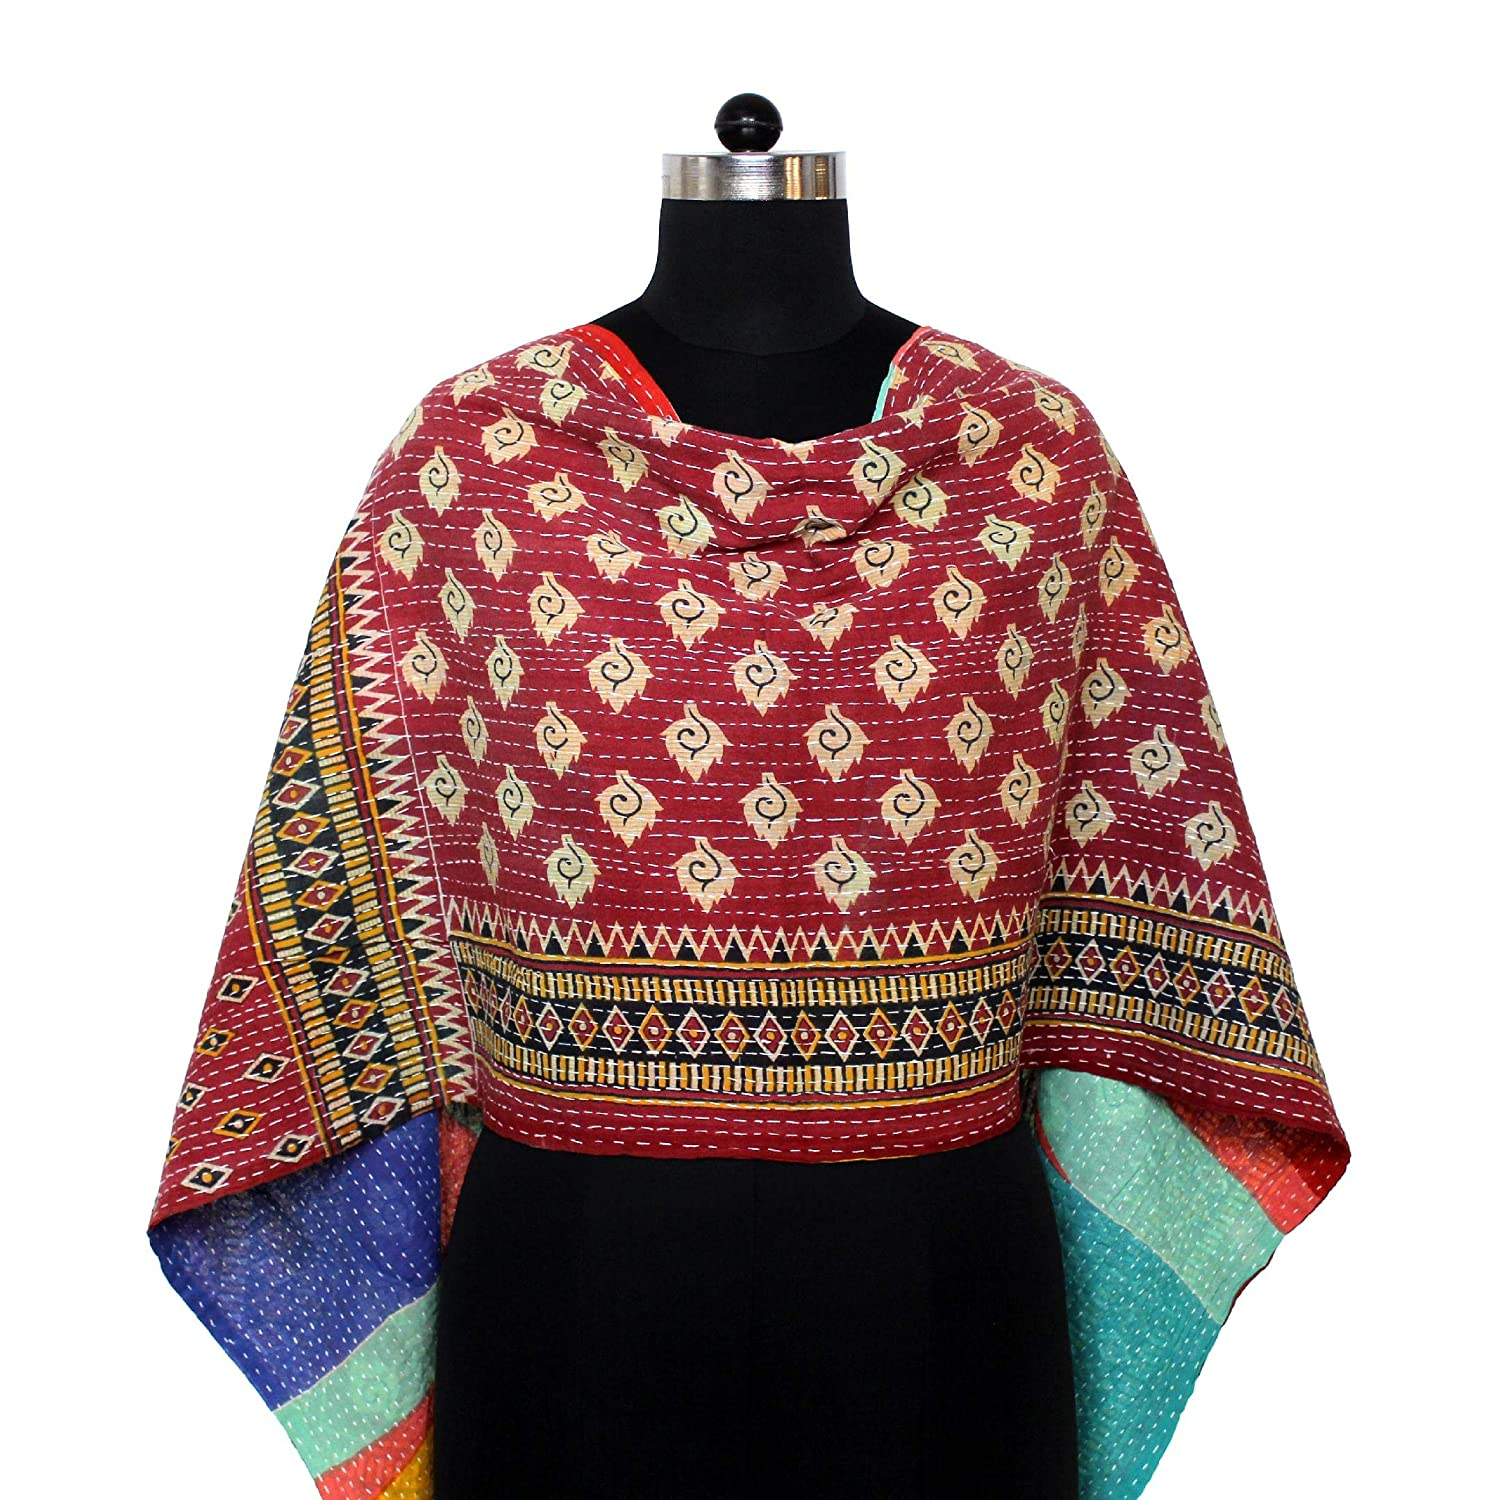 Cotton New Shipping Free Shipping Kantha overseas Scarf Neck Wrap Stole Hand S Women Dupatta Quilted